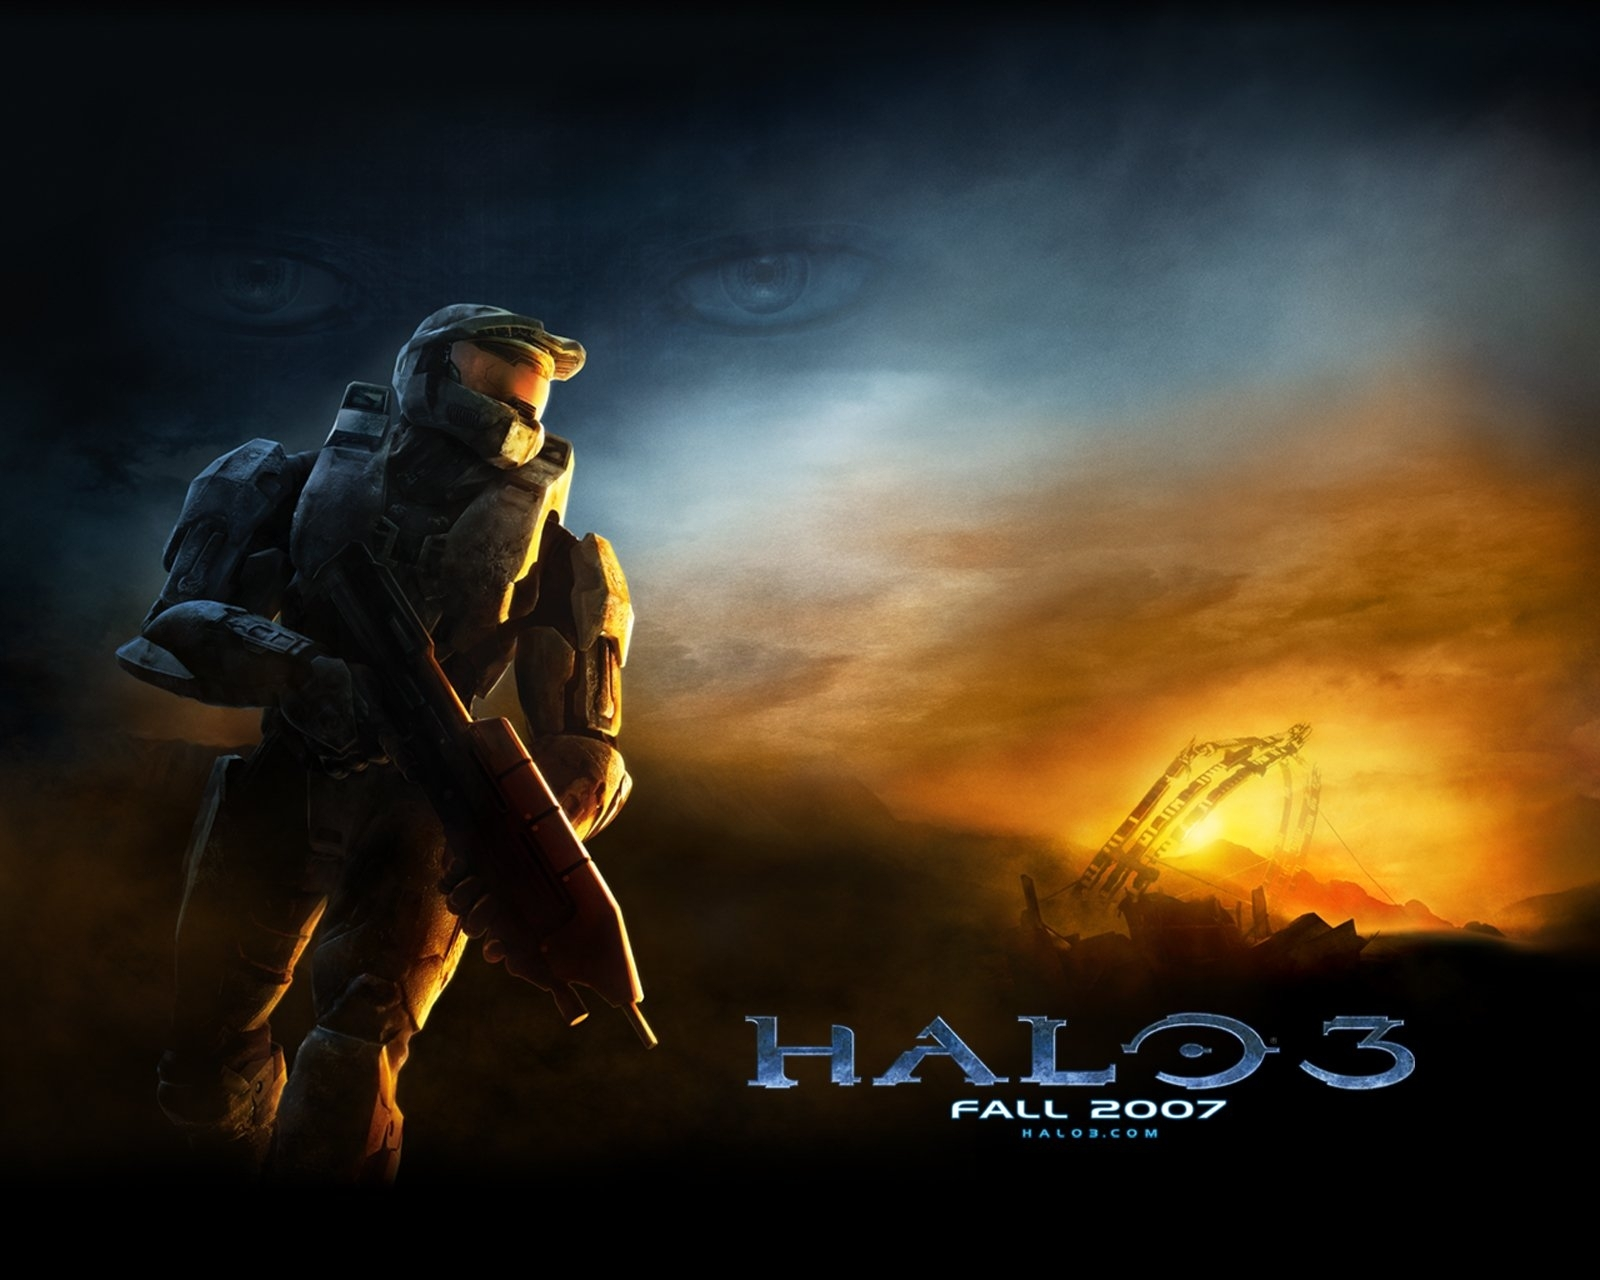 10 Most Popular Halo 3 Wallpaper Hd FULL HD 1920×1080 For PC Desktop